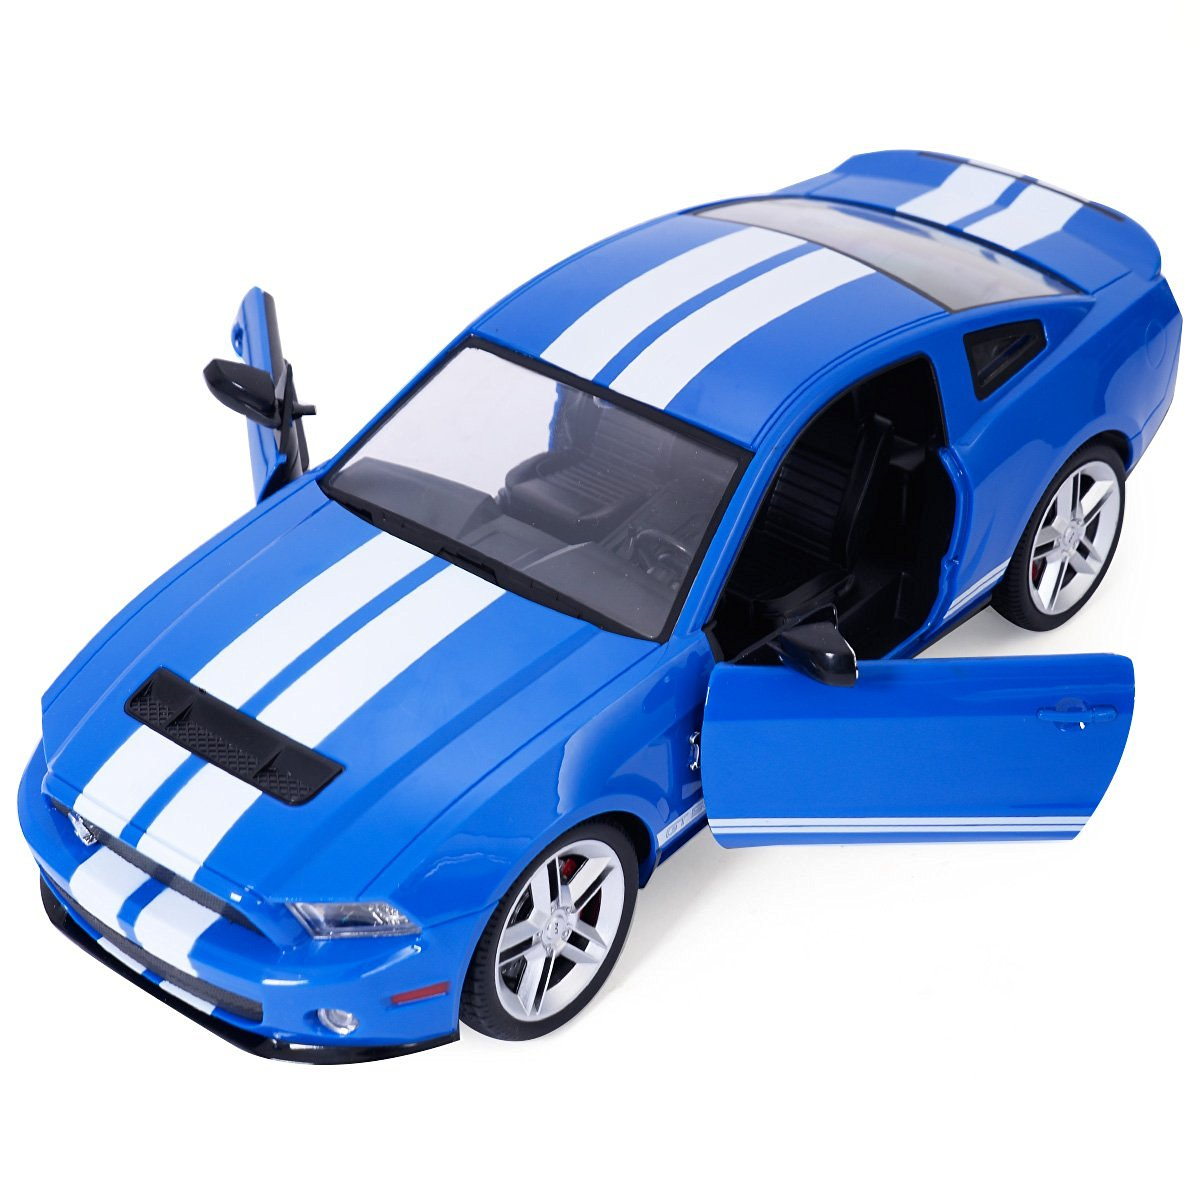 Goplus new 1 14 radio remote control rc model car ford mustang shelby gt500 blue